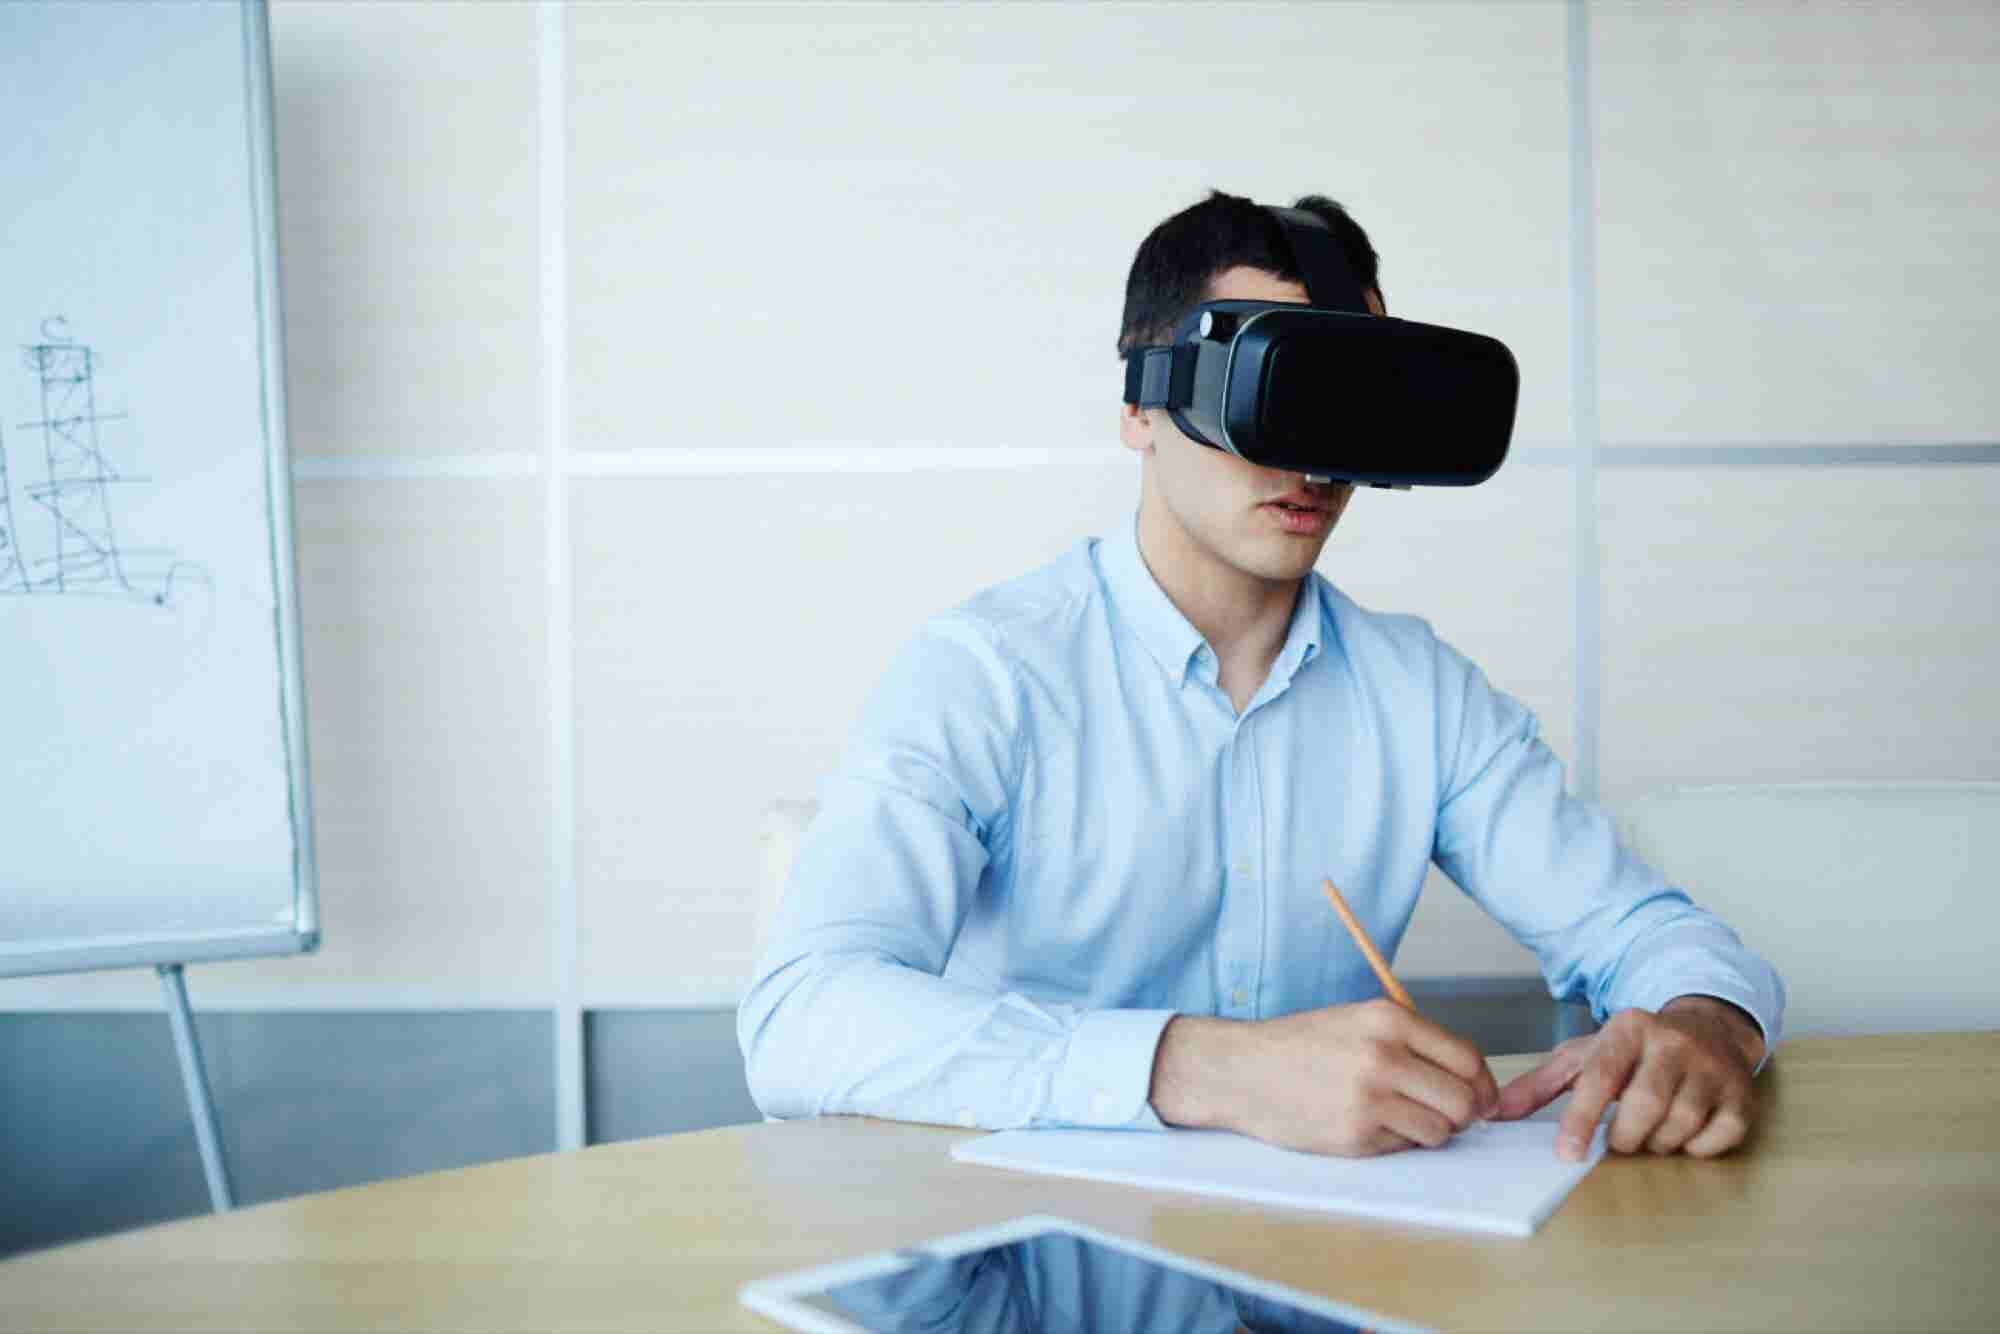 How VR Will Change the Way We Work